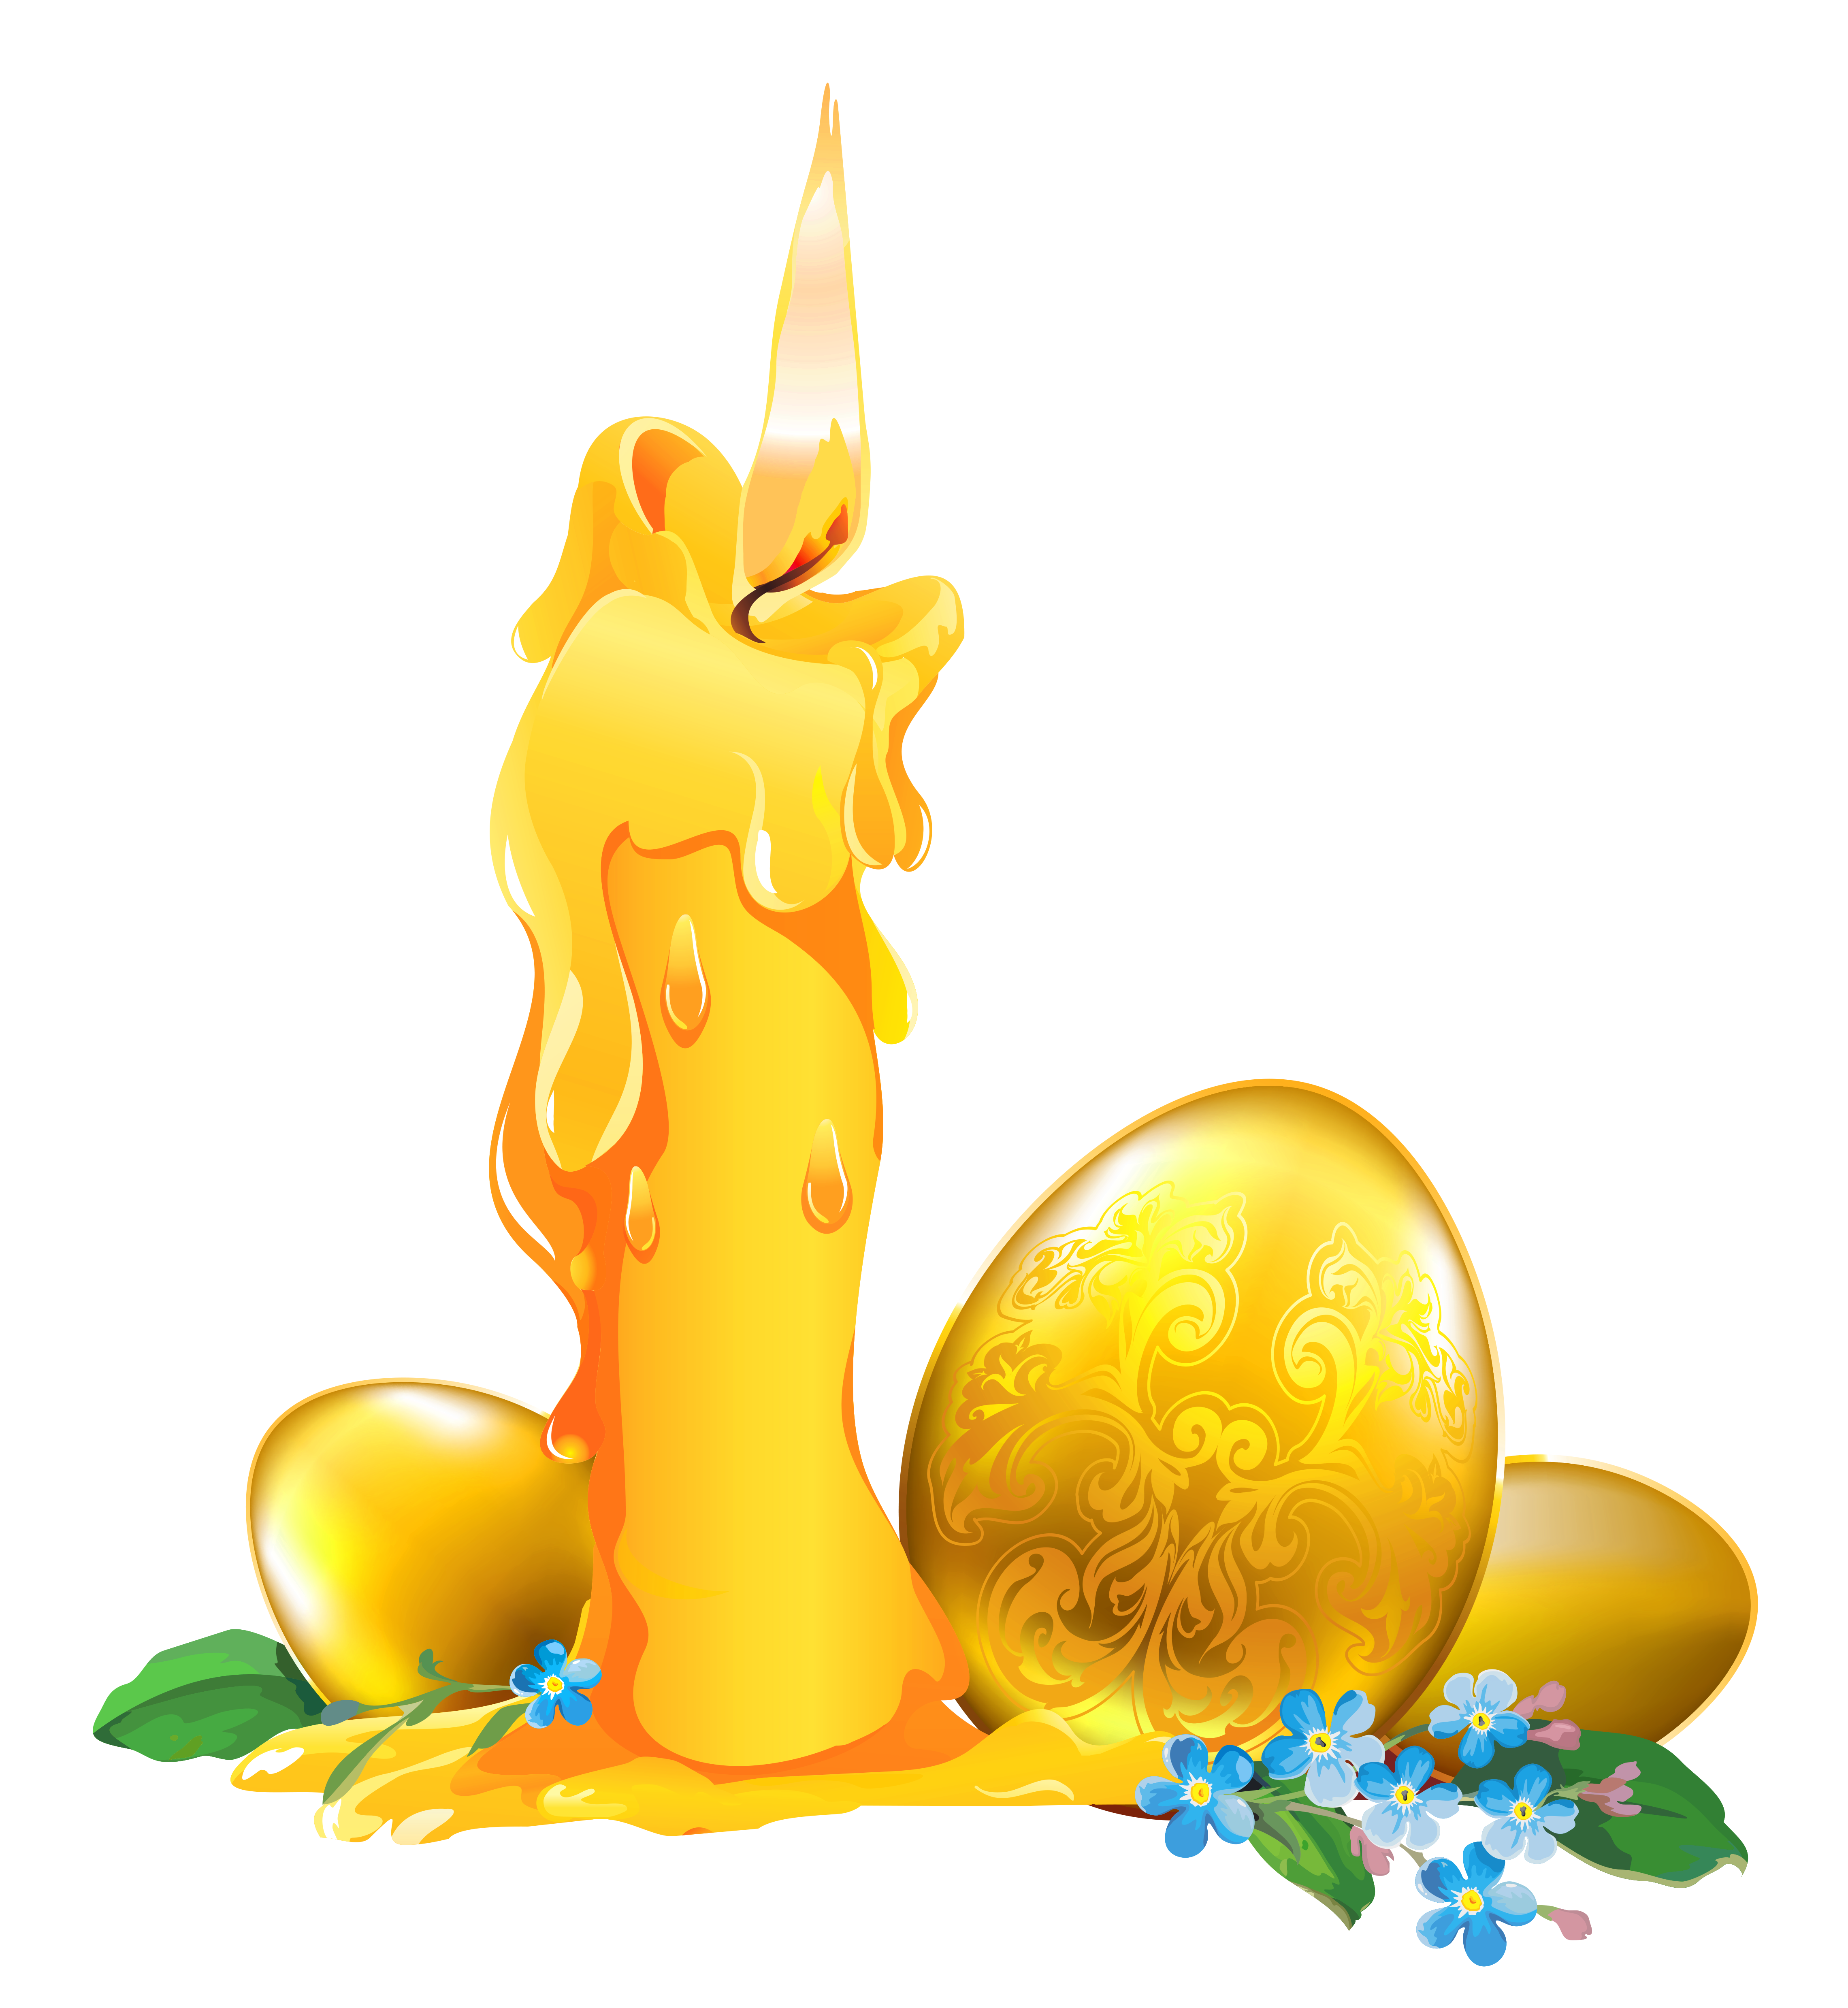 Golden easter egg clipart png vector free stock Easter Golden Egg Decoration PNG Clipart vector free stock